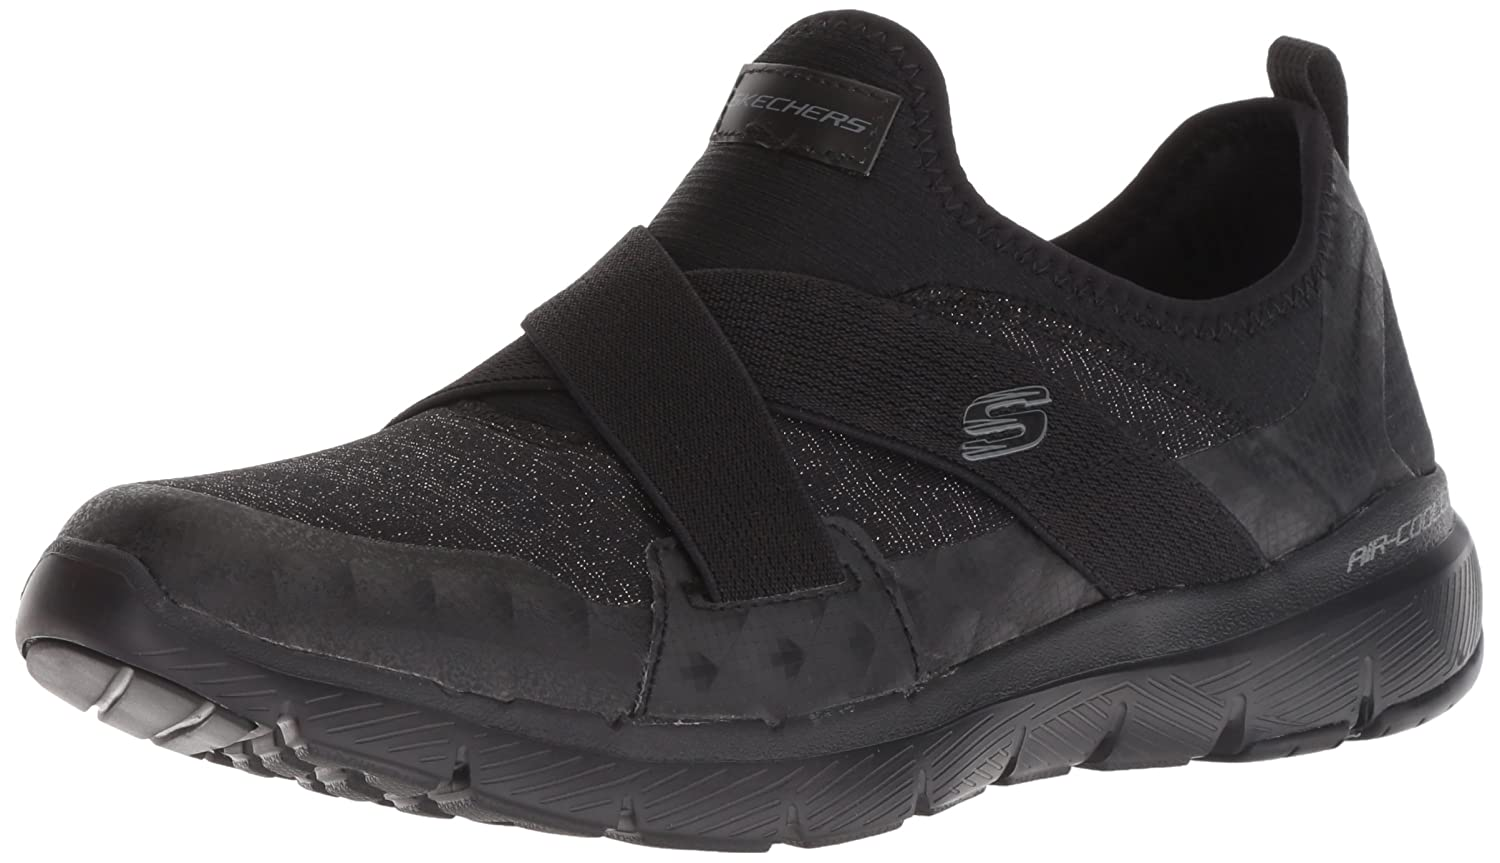 Skechers Women's Flex Appeal 3.0-Finest Hour Sneaker B07B14CPQ5 8.5 M US|Black/Black